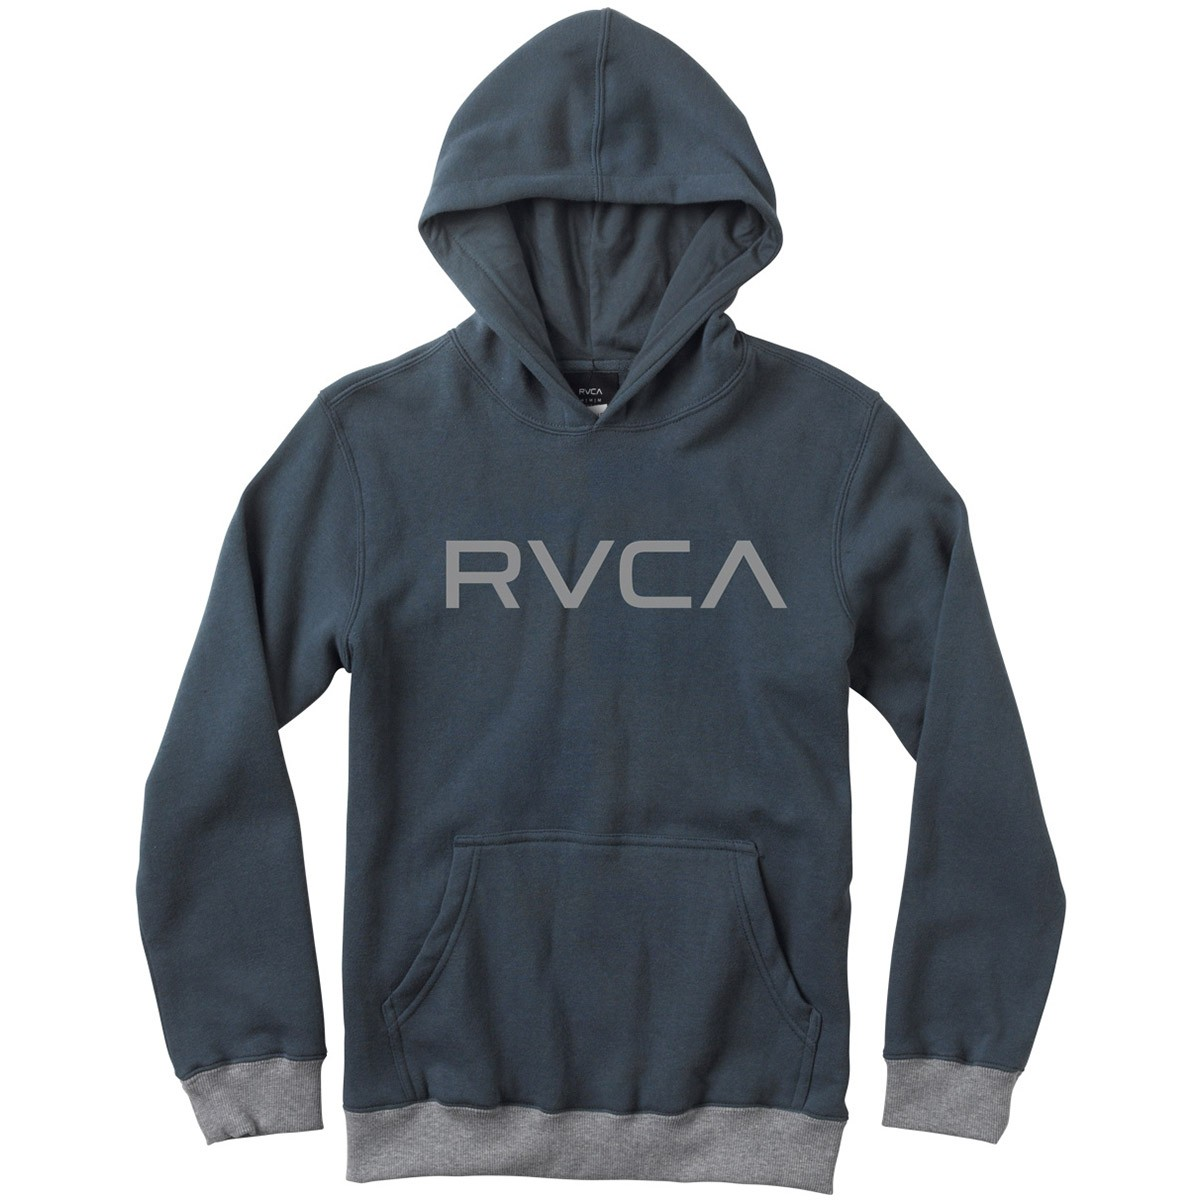 RVCA Big RVCA Youth Pullover Hoodie - Midnight